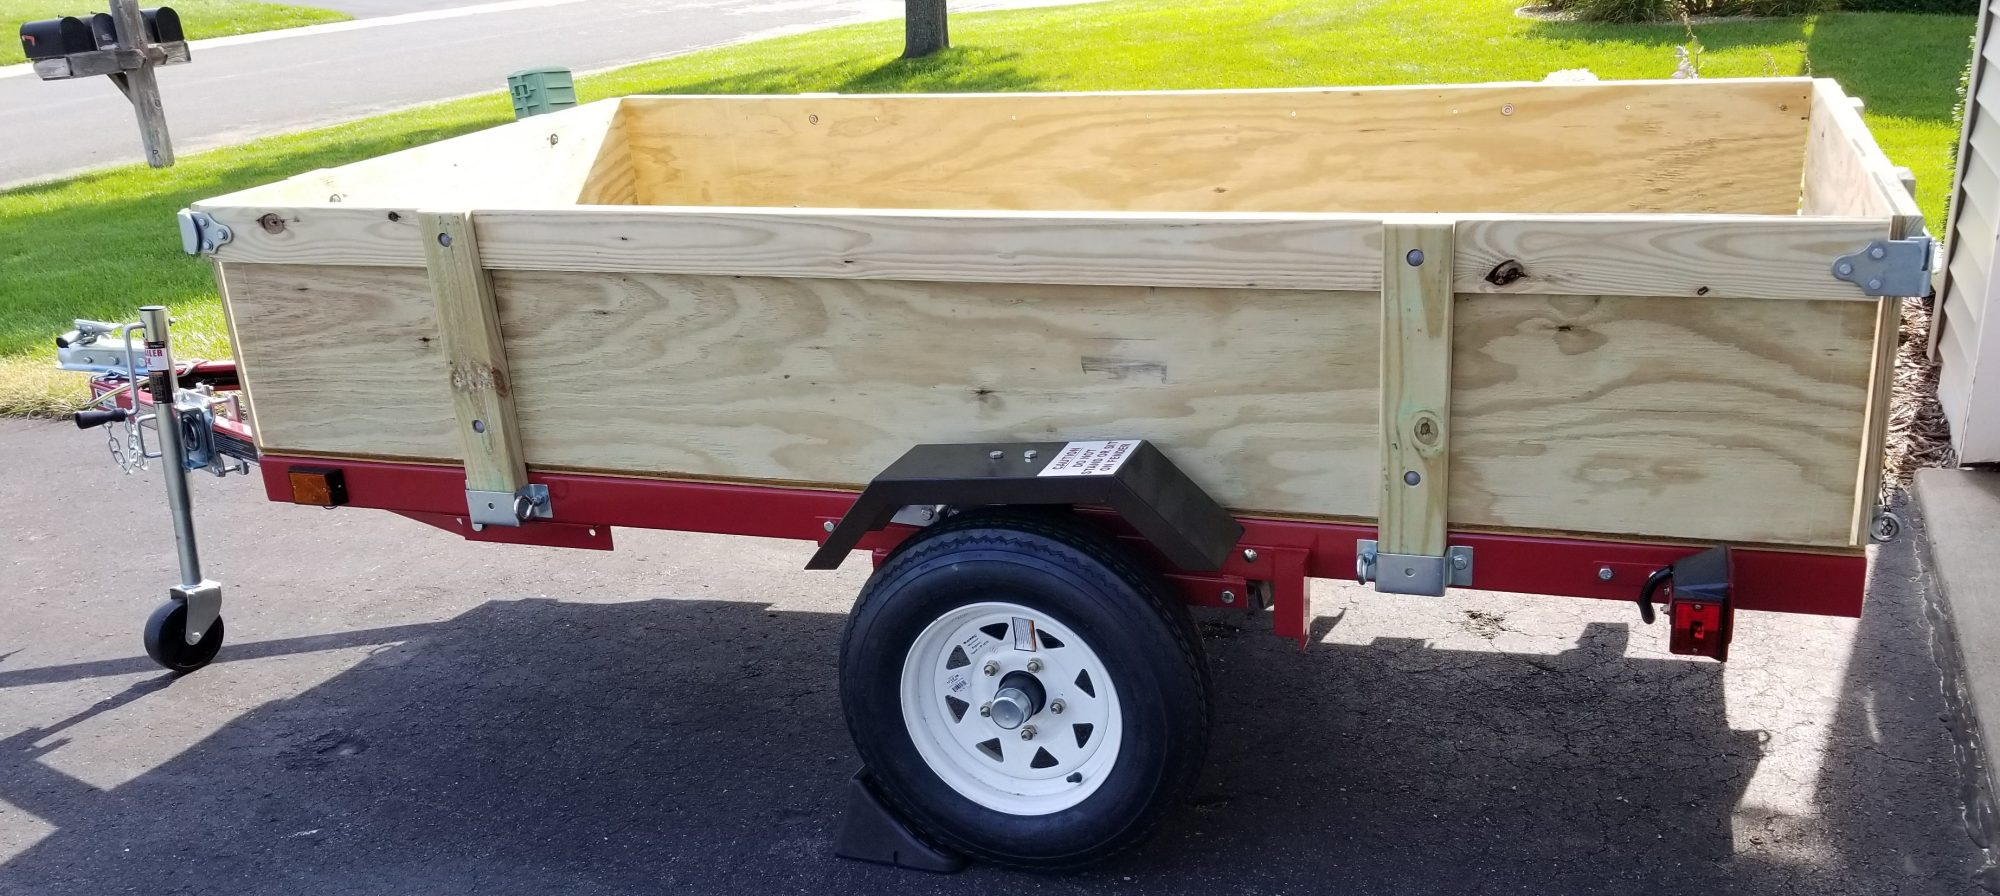 hight resolution of harbor freight folding trailer box with removable sides third stall woodworking